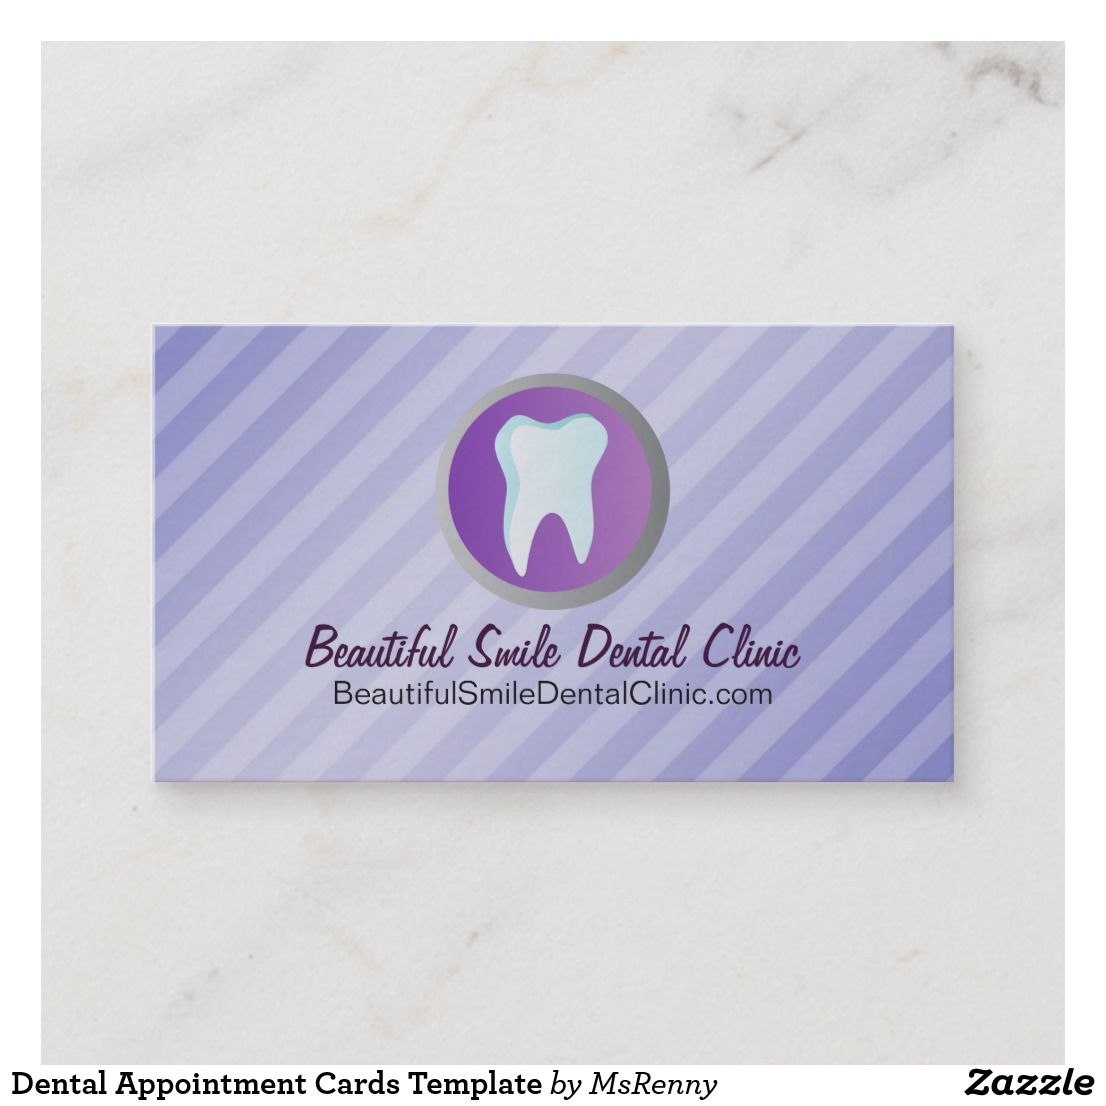 Dental Appointment Cards Template  Business Cards  Card Templates With Dentist Appointment Card Template